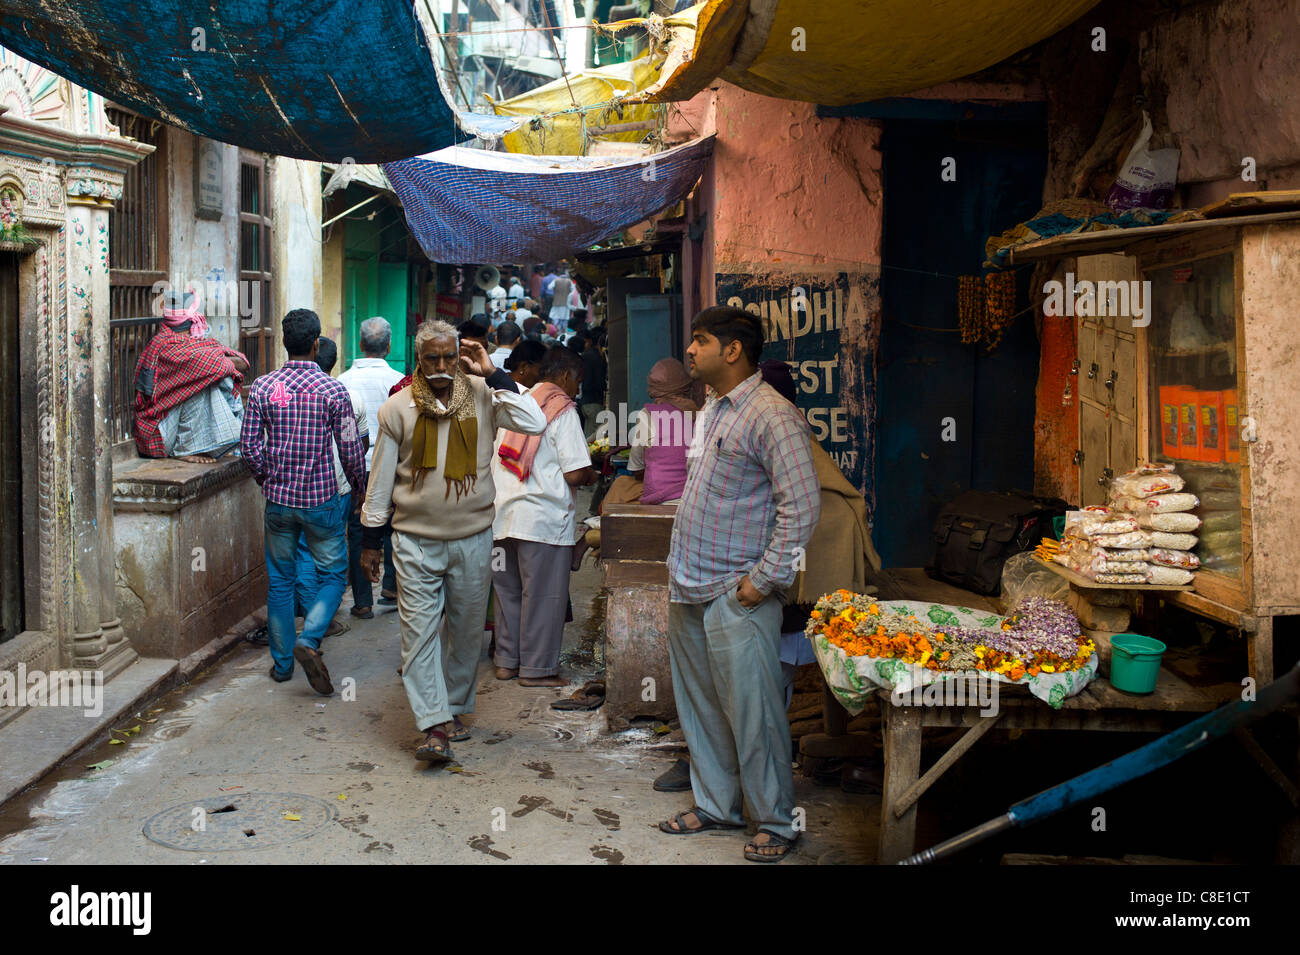 Indian people in alleyway in the holy city of Varanasi, Benares, Northern India - Stock Image